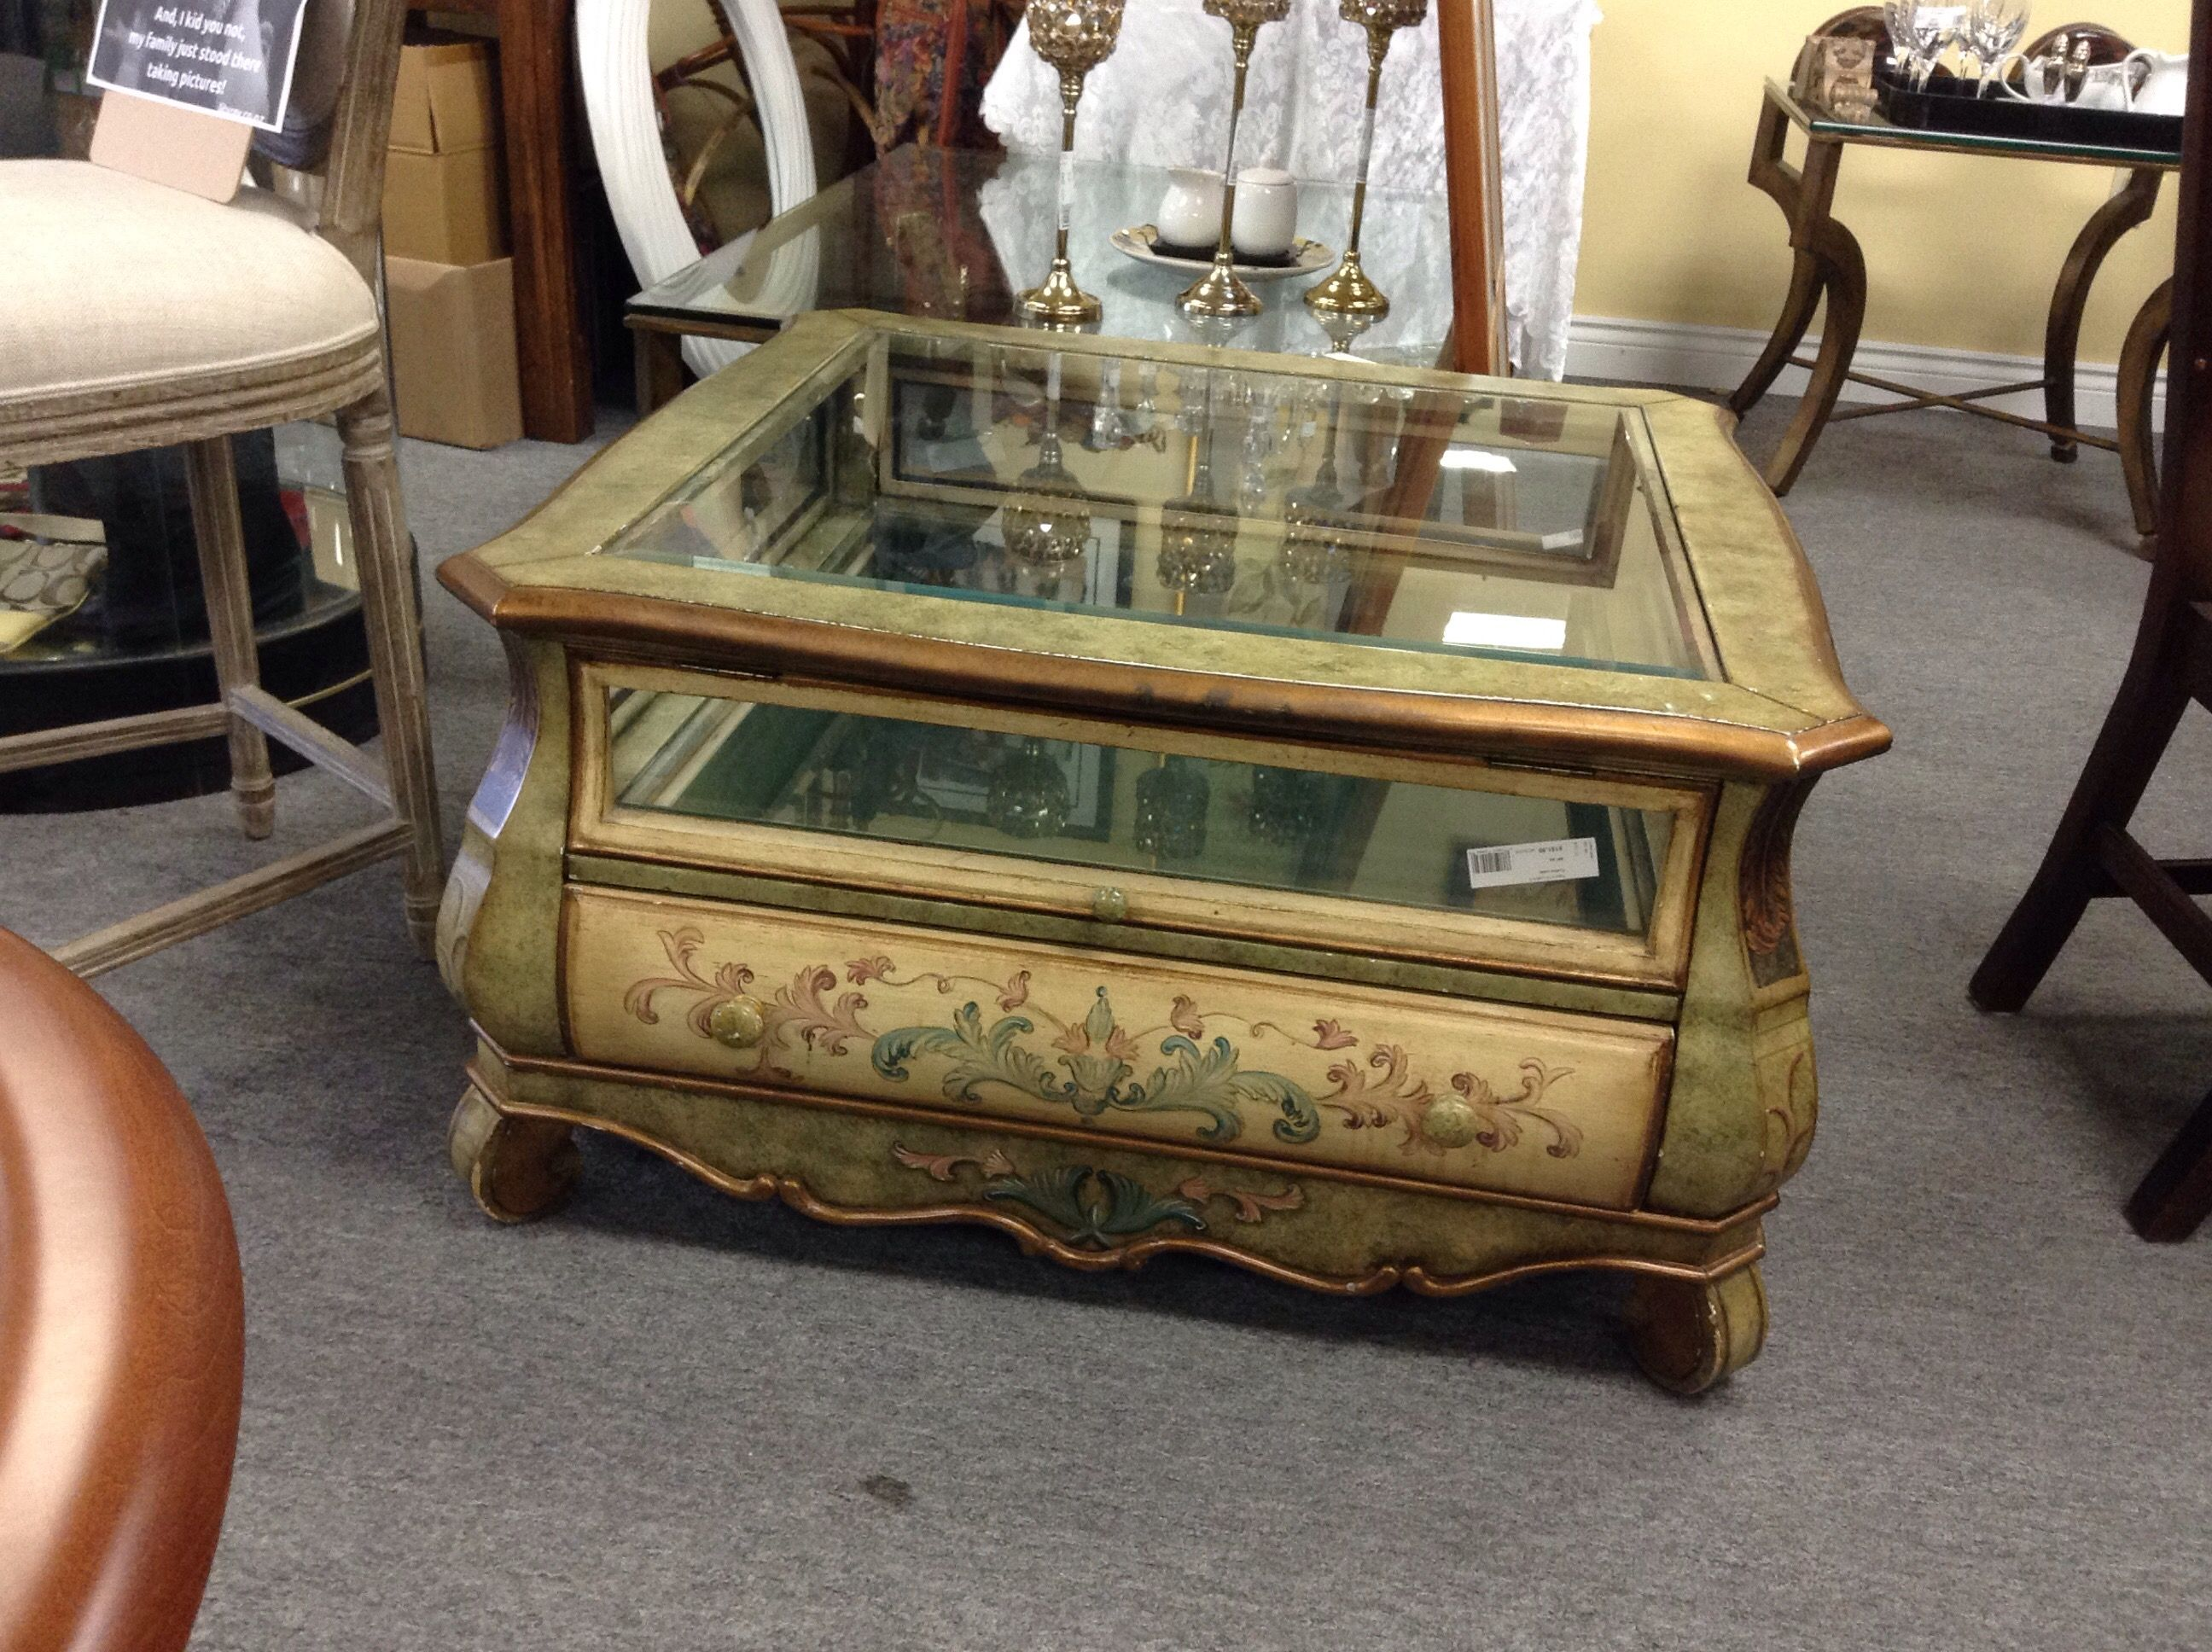 Captivating Showcase Coffee Table   Display Your Treasures In This Showcase Coffee Table.  Item 887